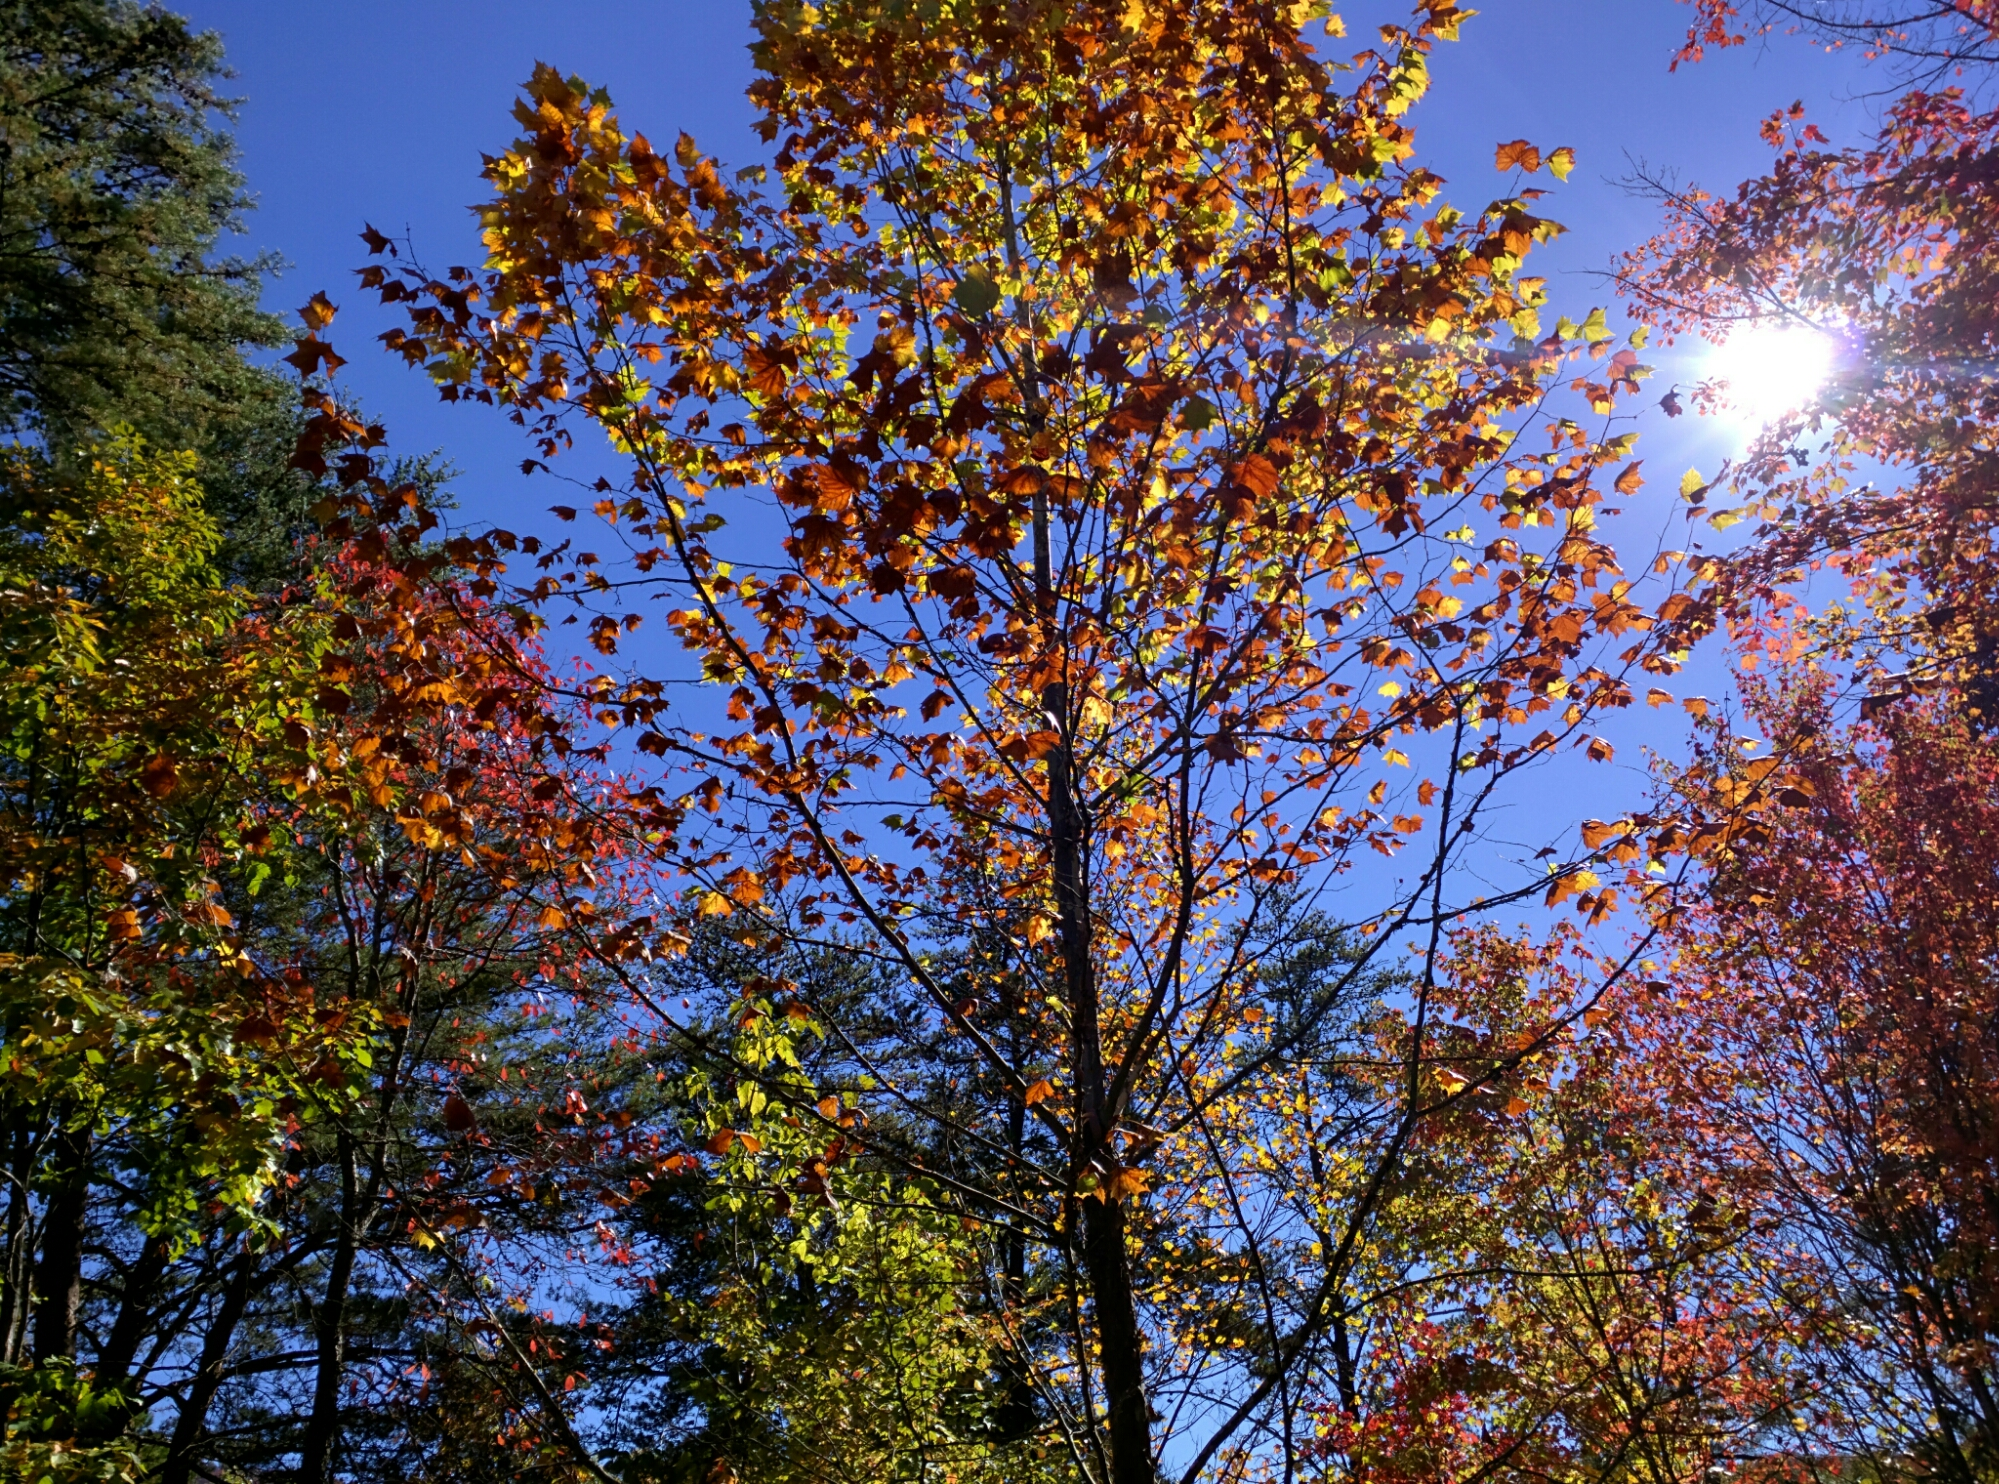 A tree in autumn. Yellow leaves against a clear blue sky.